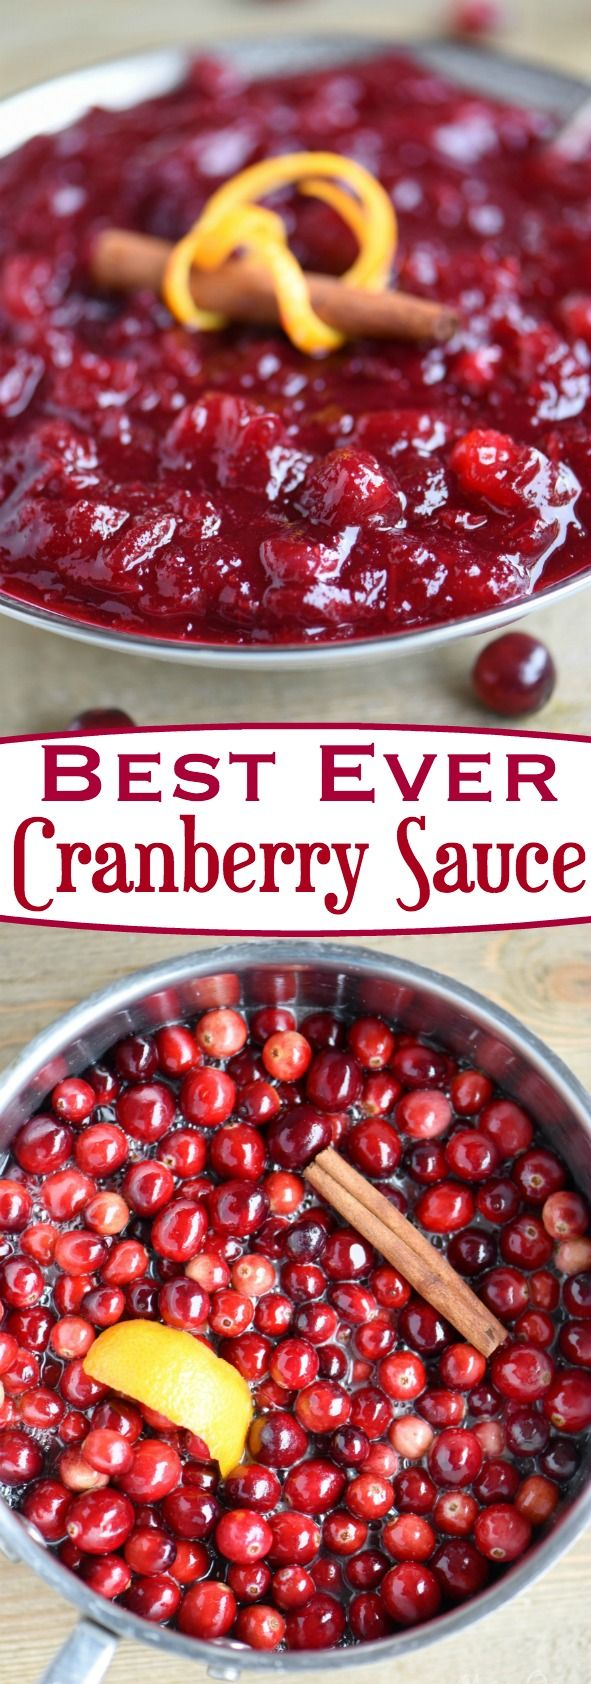 The BEST Cranberry Sauce   Ready in 15 Minutes! - Mom On Timeout